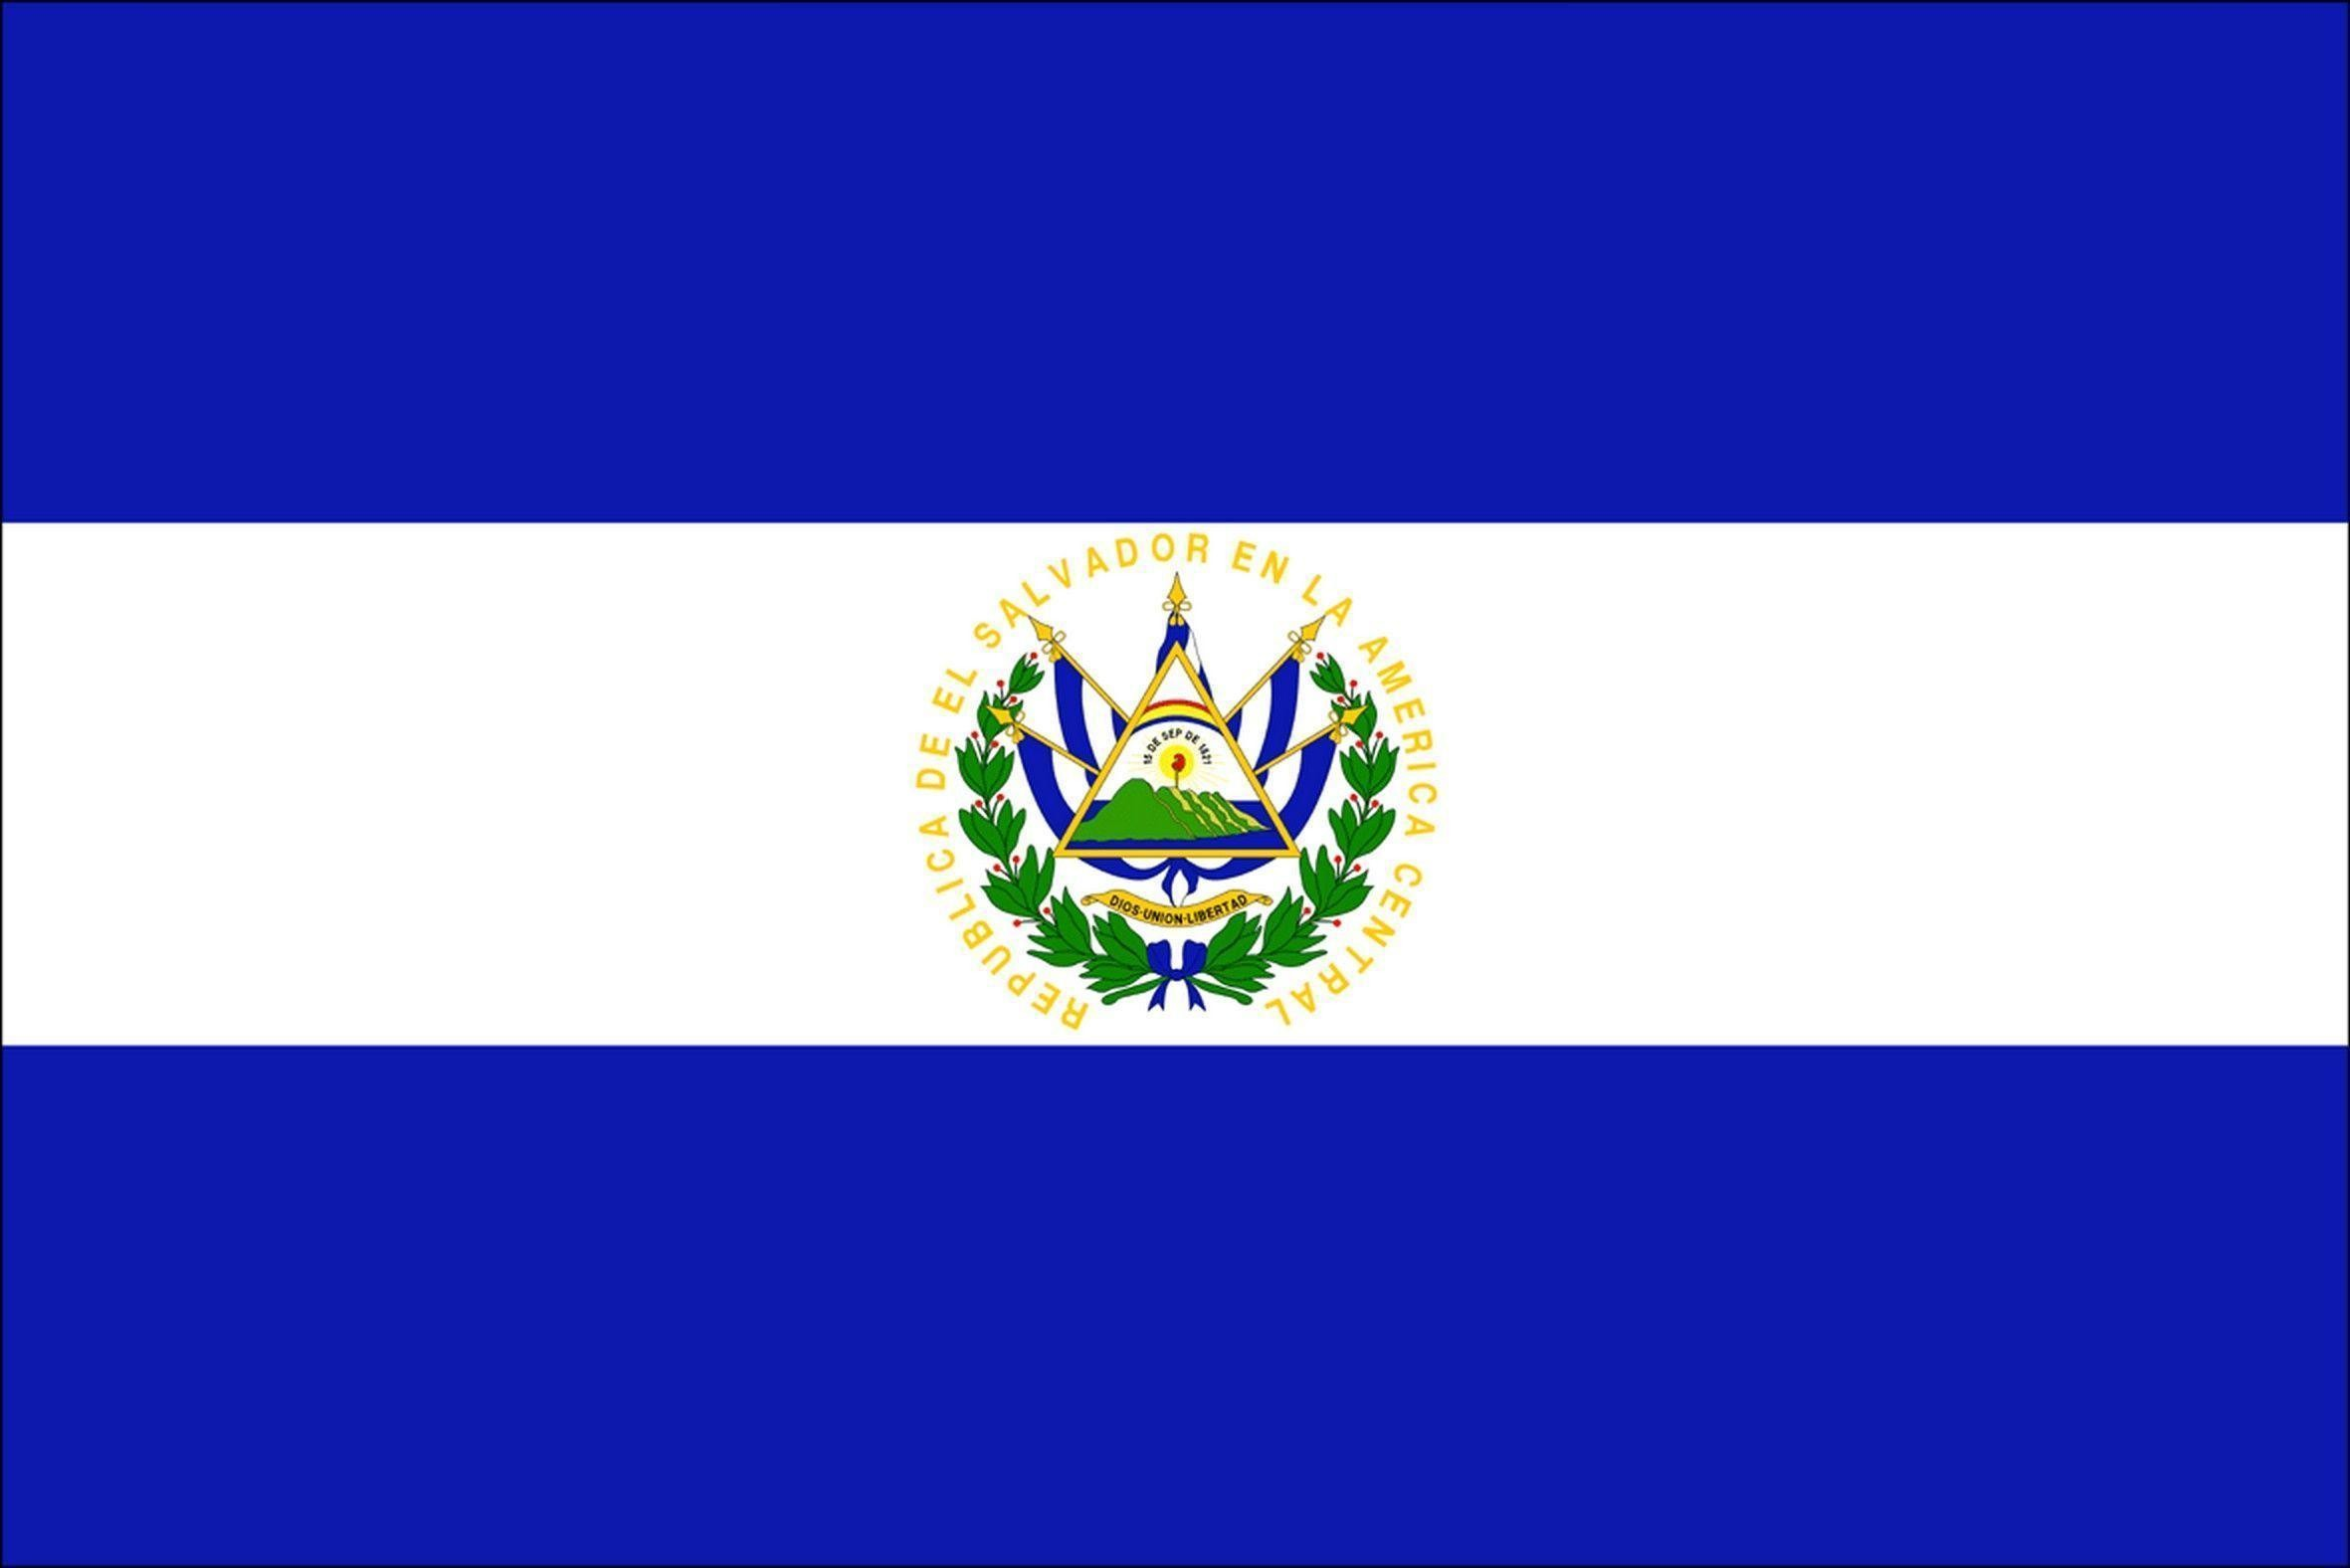 2362x1576 el-salvador flag postcard, el-salvador flag wallpaper, el-salvador .